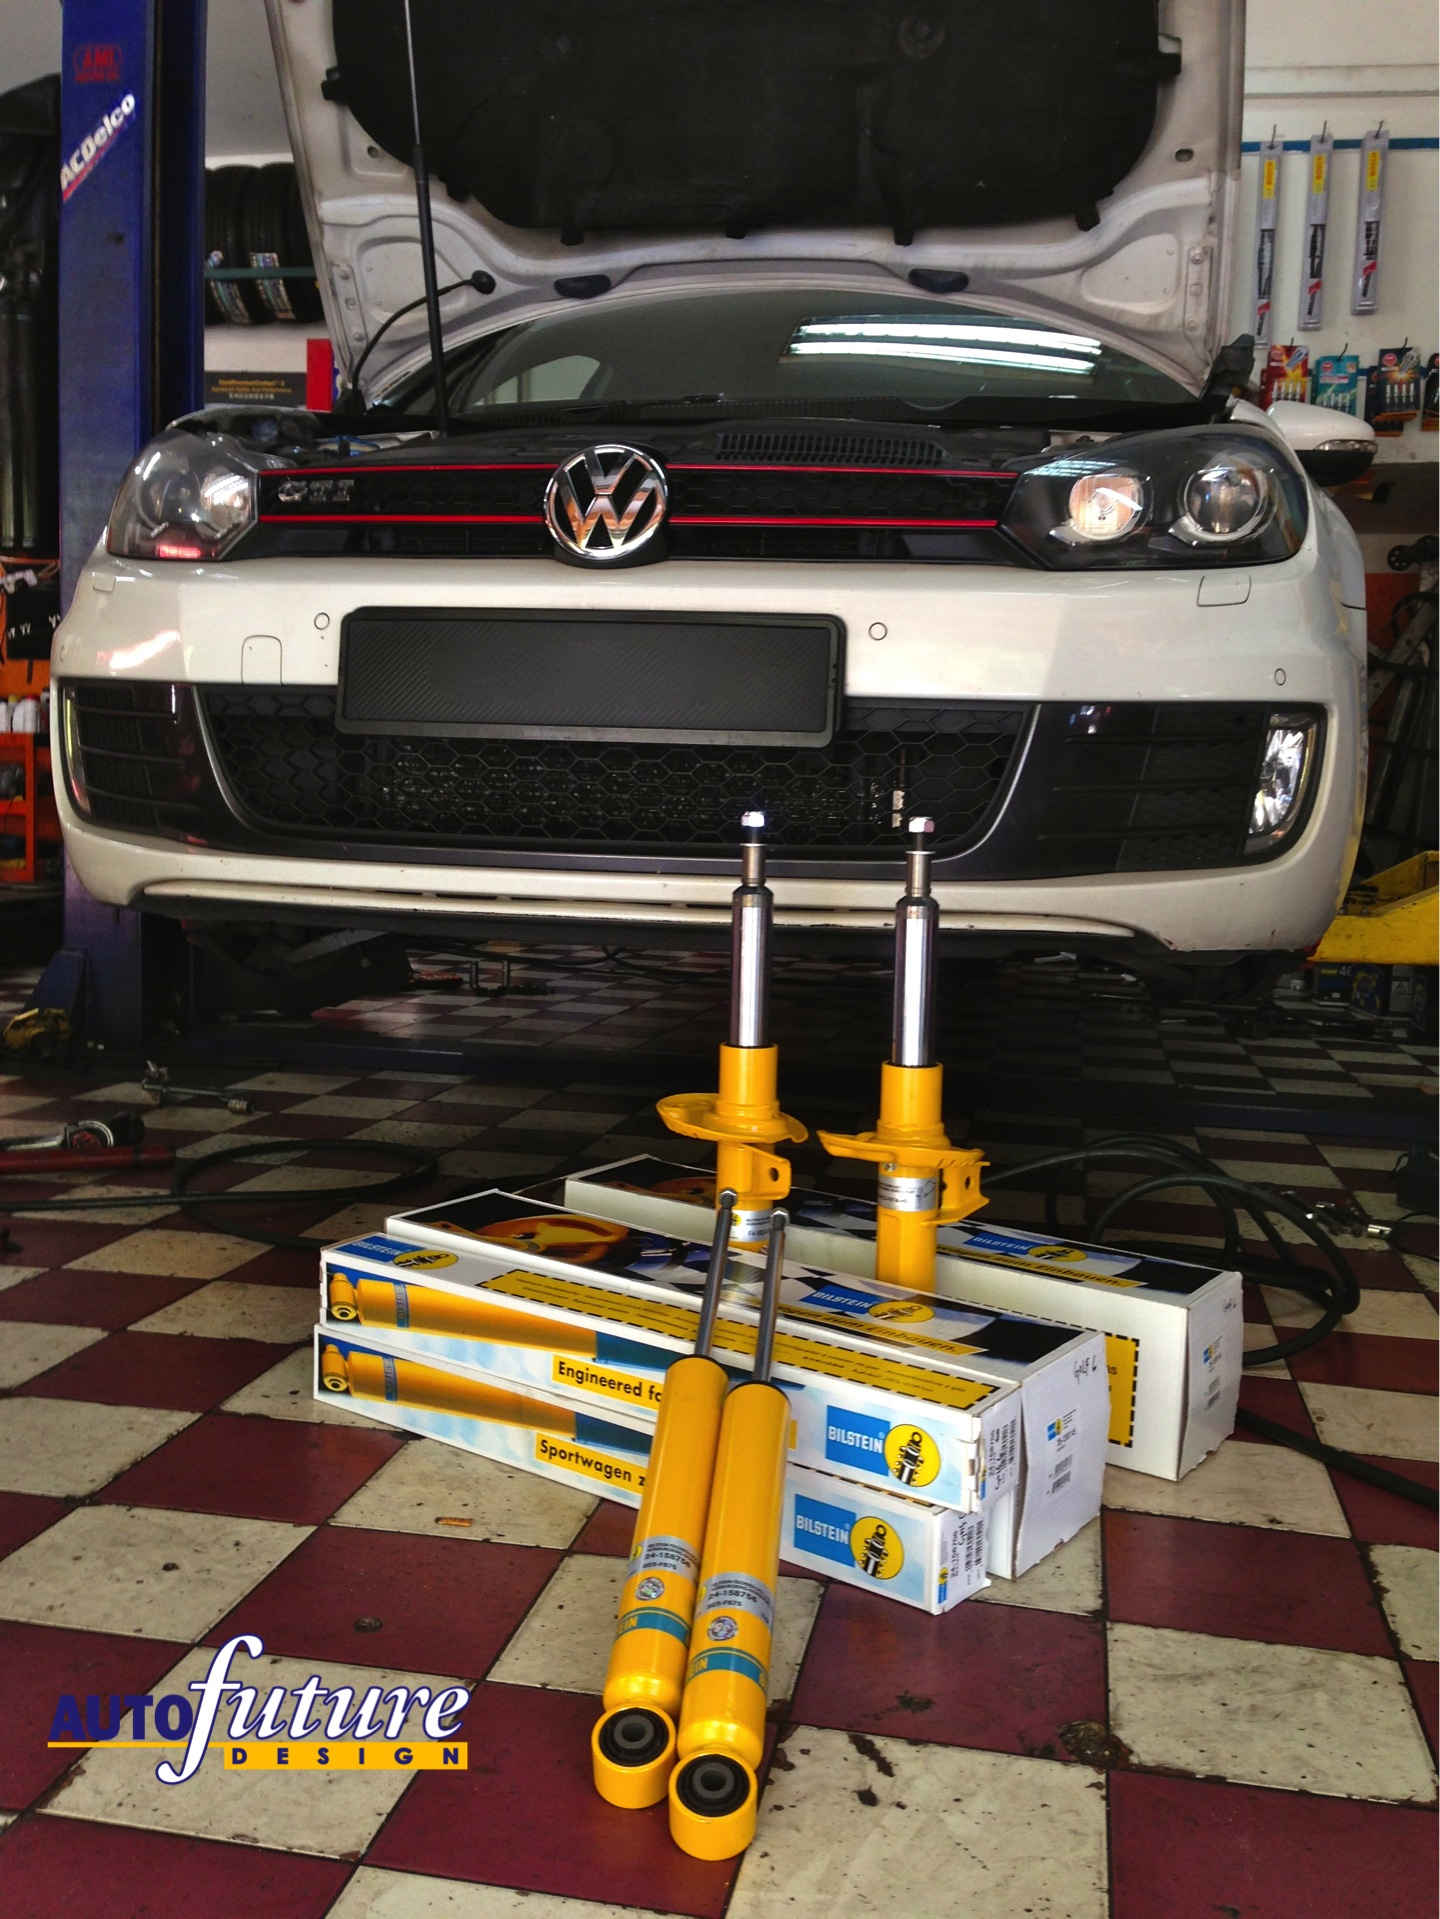 bilstein b8 shock absorber on vw golf mk6 gti autofuture design sdn bhd. Black Bedroom Furniture Sets. Home Design Ideas